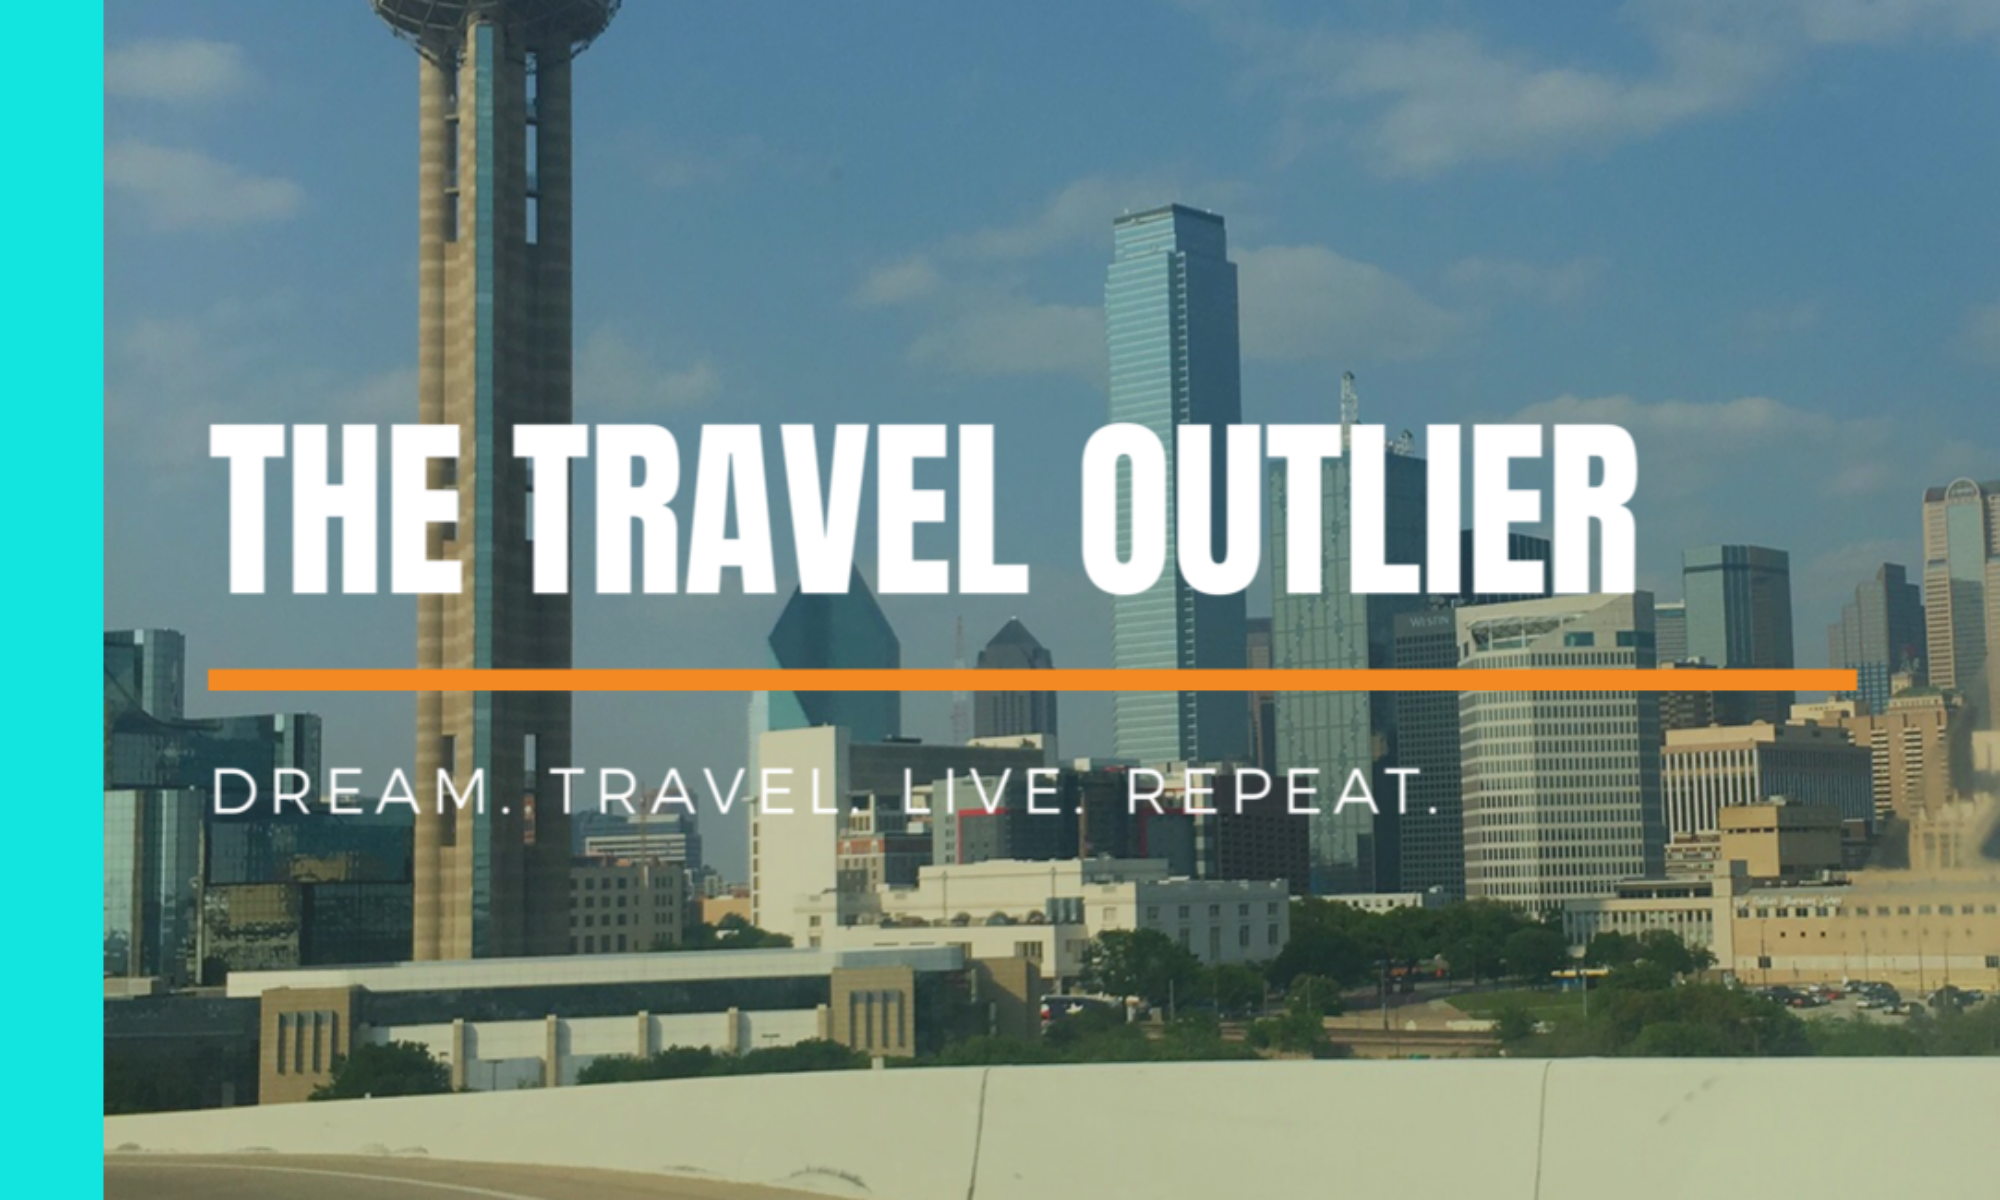 The Travel Outlier